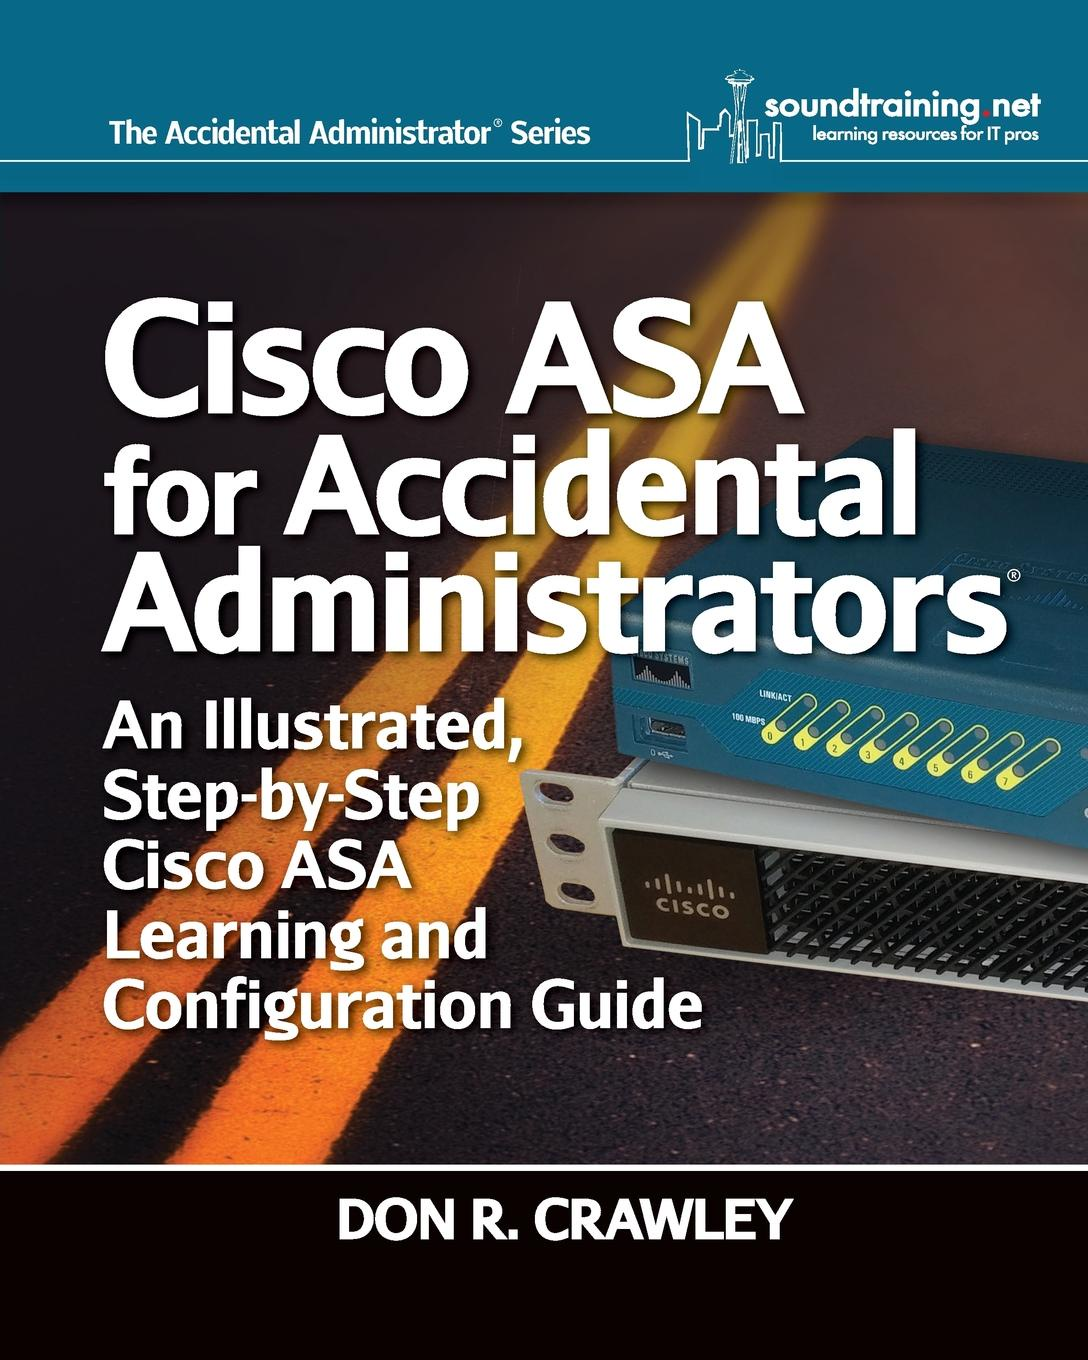 Don R Crawley Cisco ASA for Accidental Administrators. An Illustrated Step-by-Step ASA Learning and Configuration Guide umer khan the ultimate cisco and security and ip configuration cd